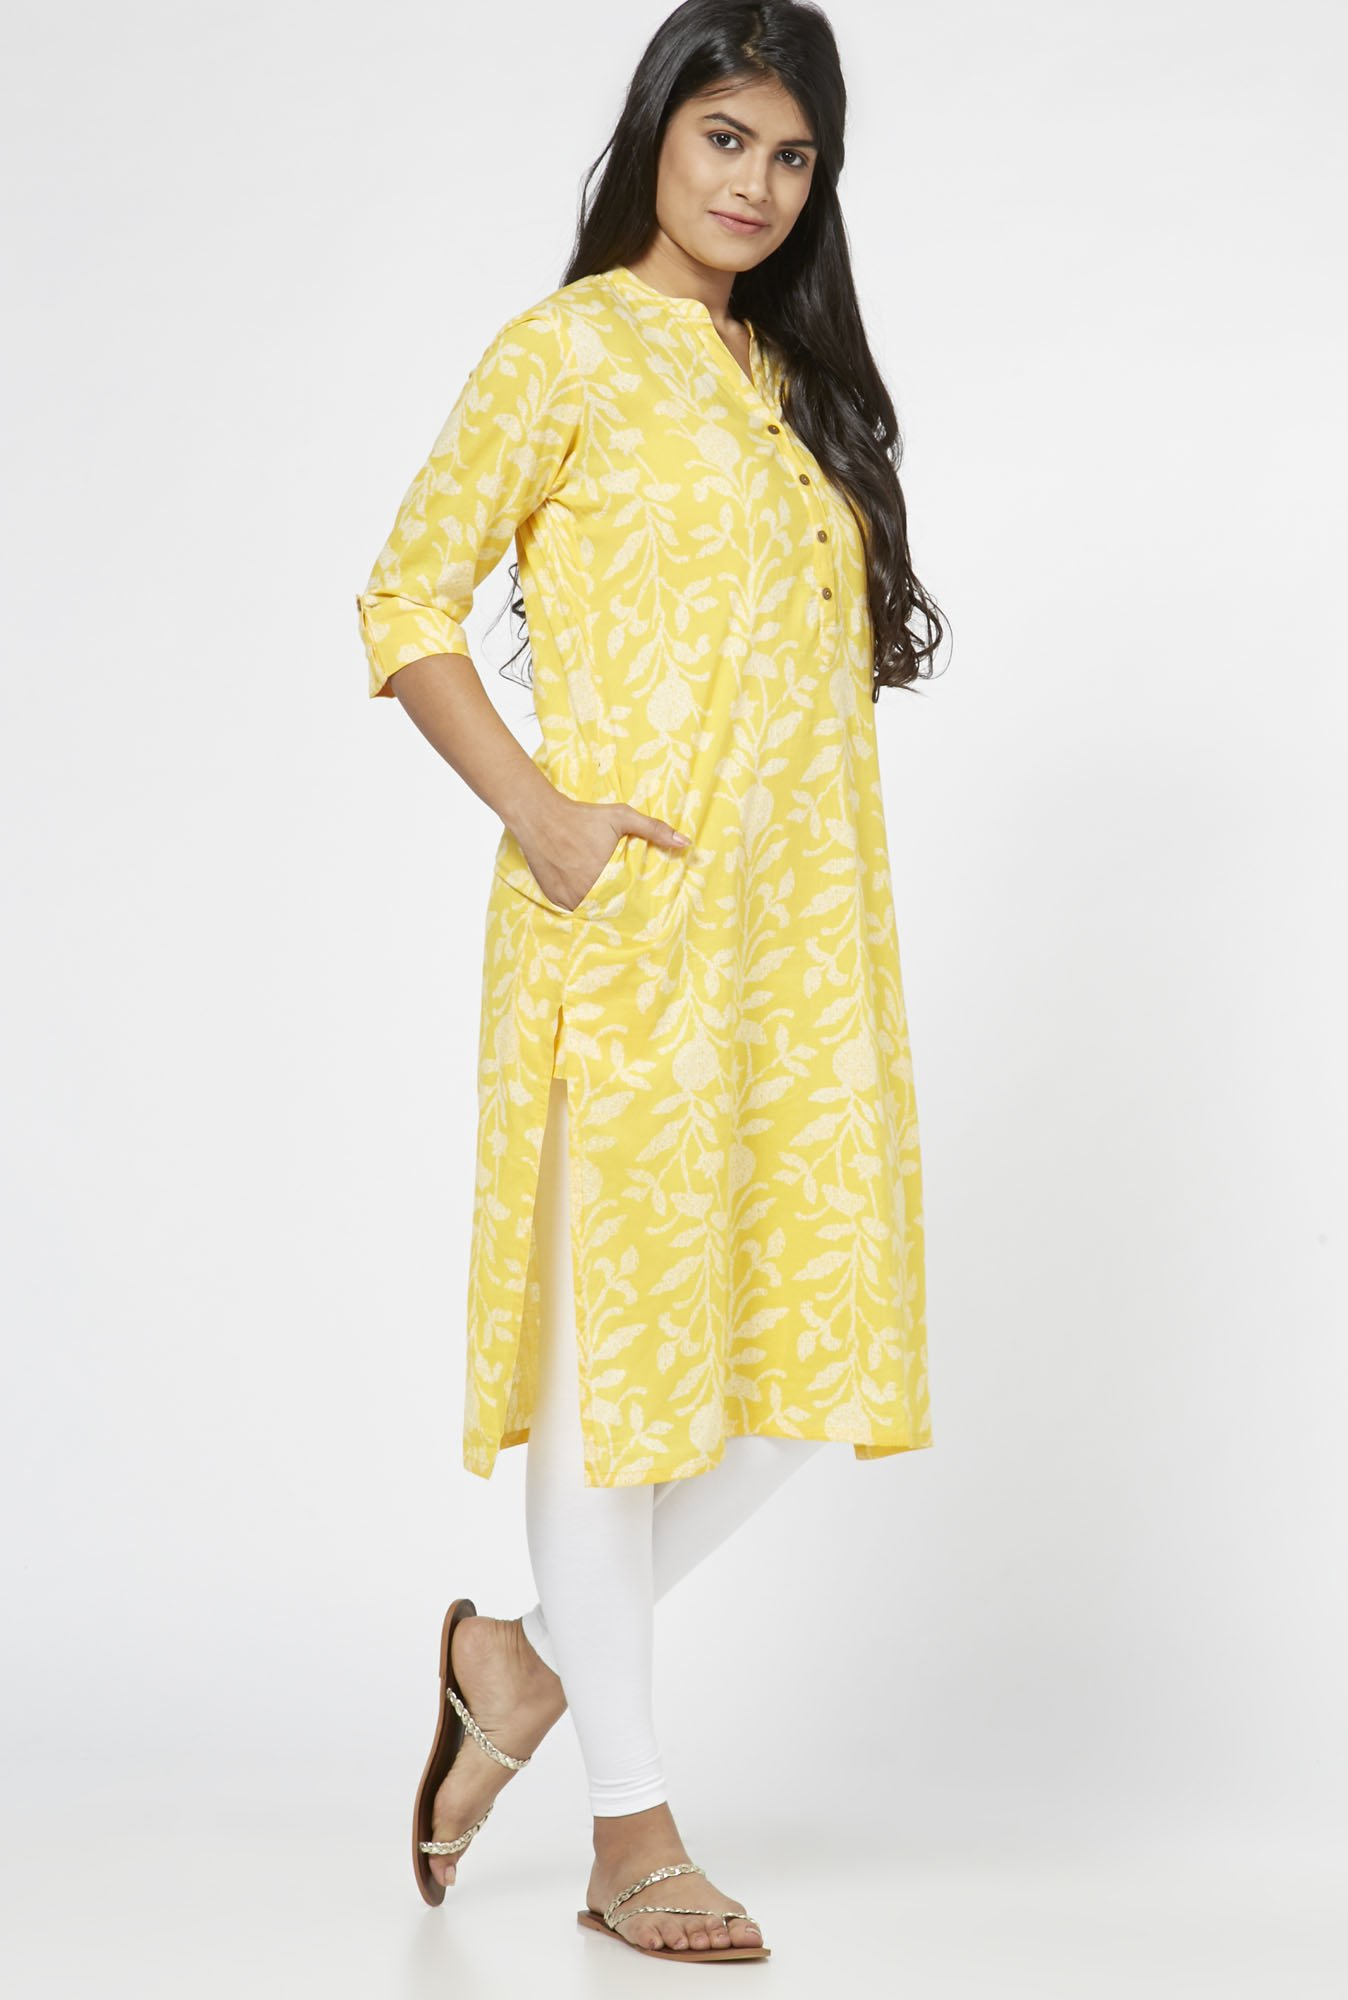 Utsa by Westside Yellow Jaal Pattern Kurta